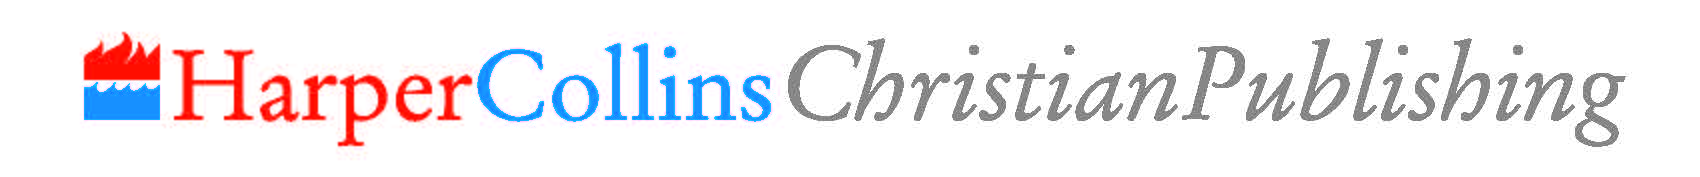 HarperCollins Christian Publishing Logo